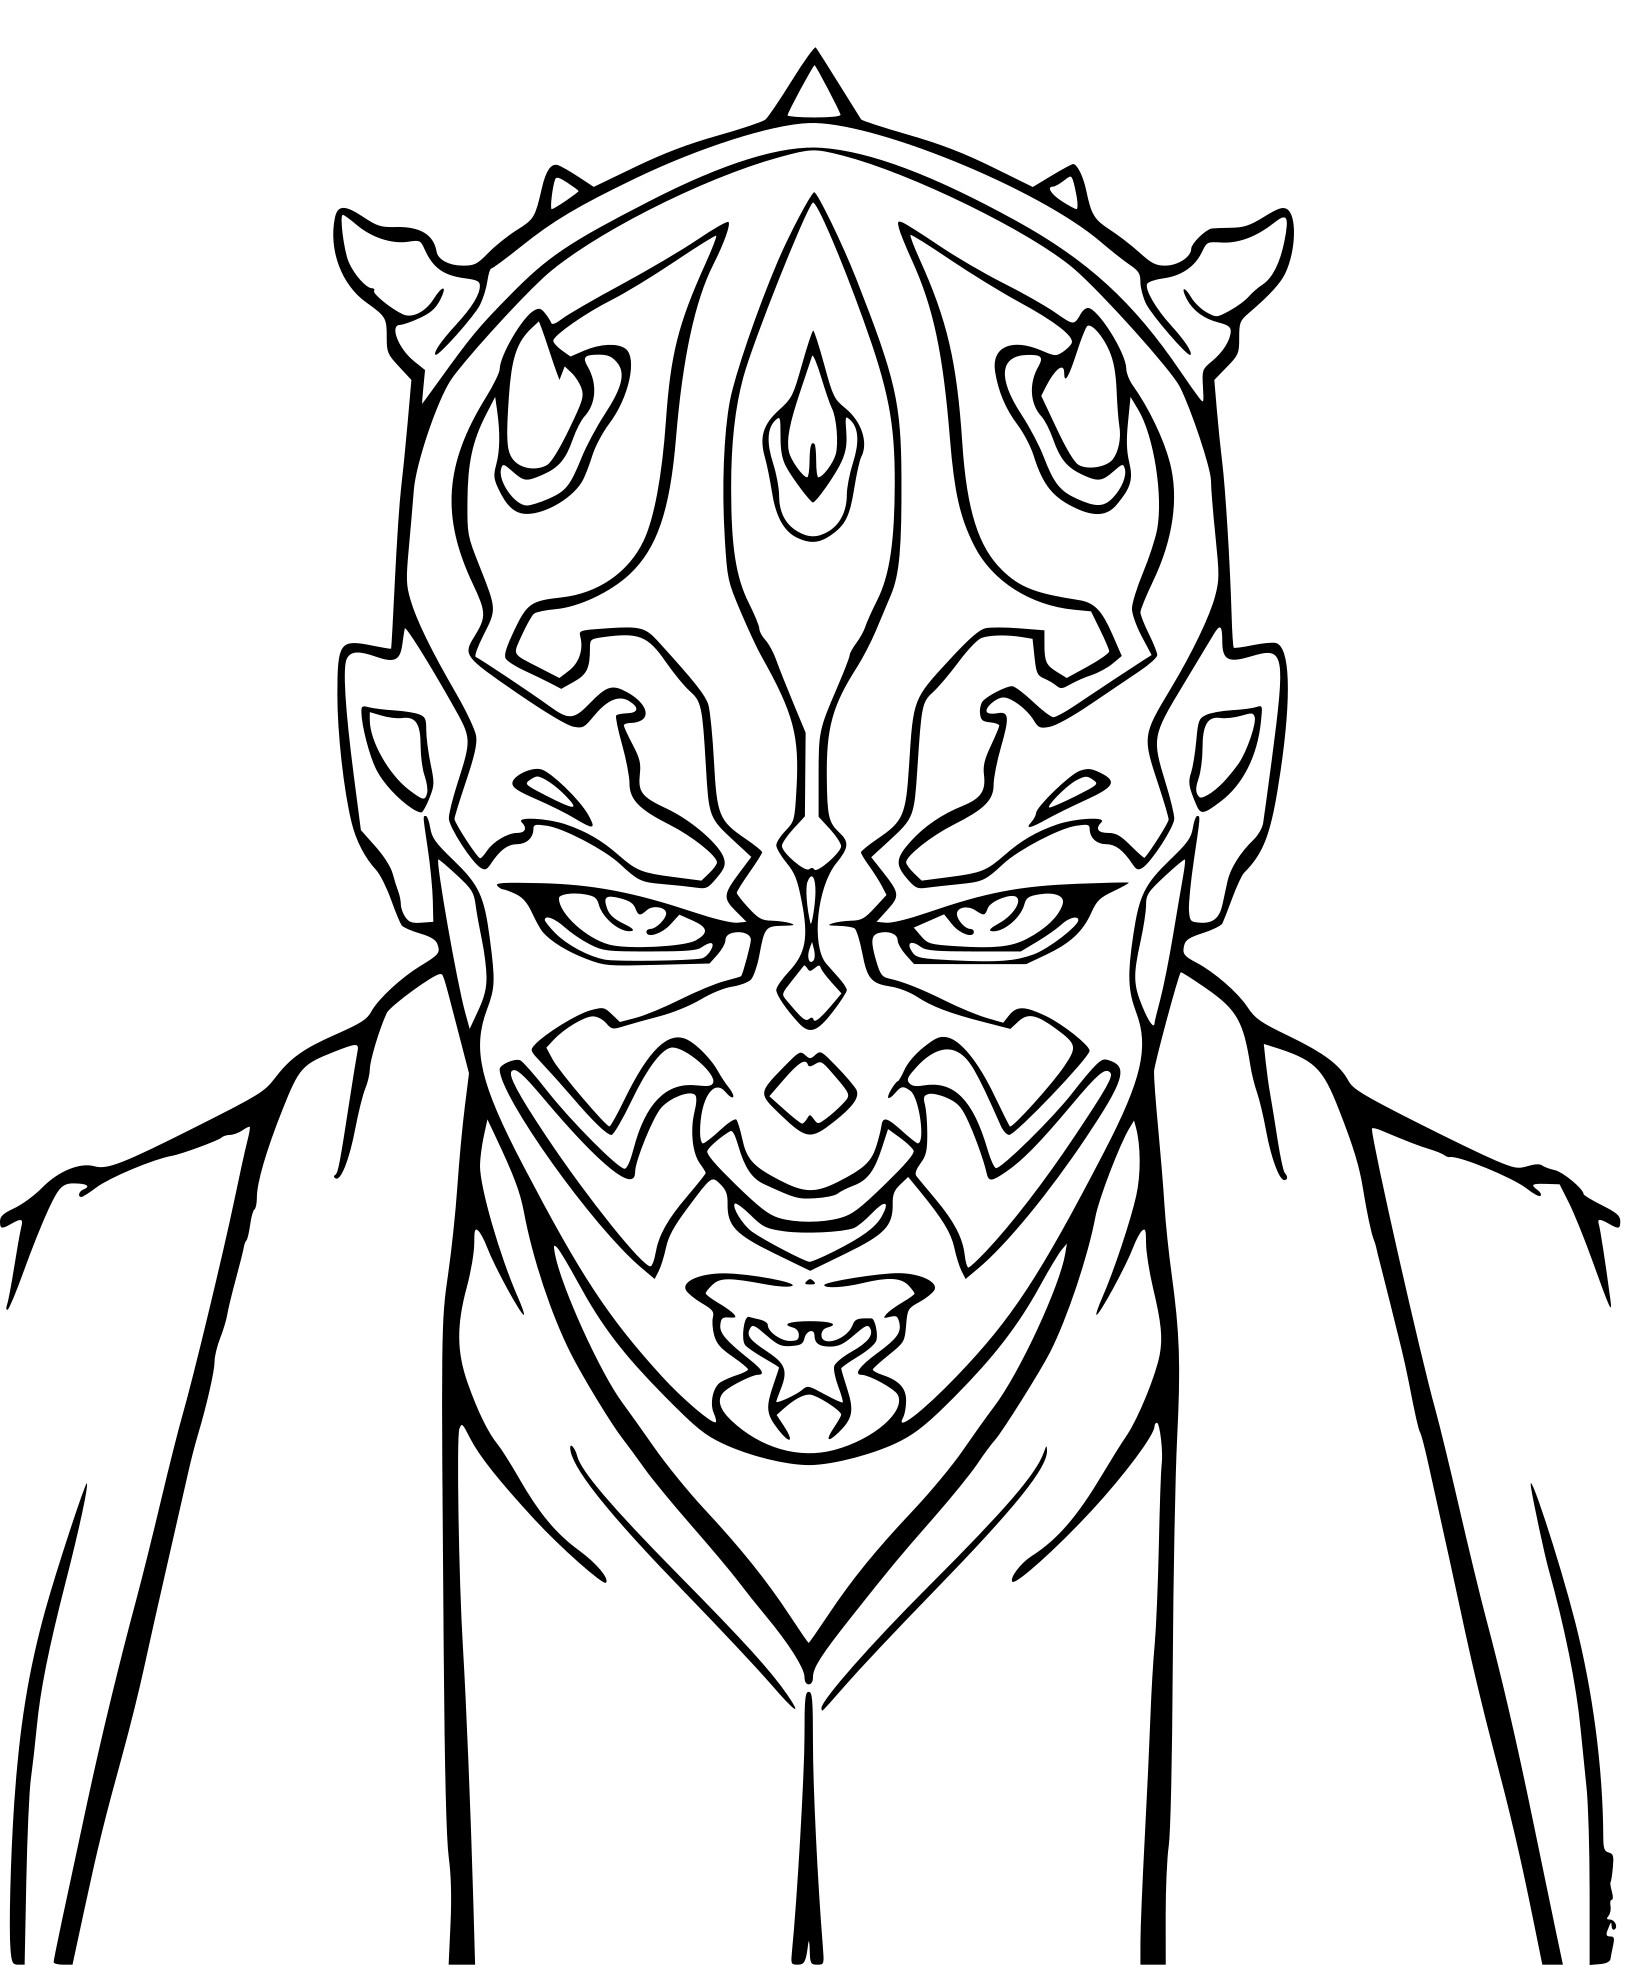 Coloriage star wars sith imprimer - Star wars gratuit ...